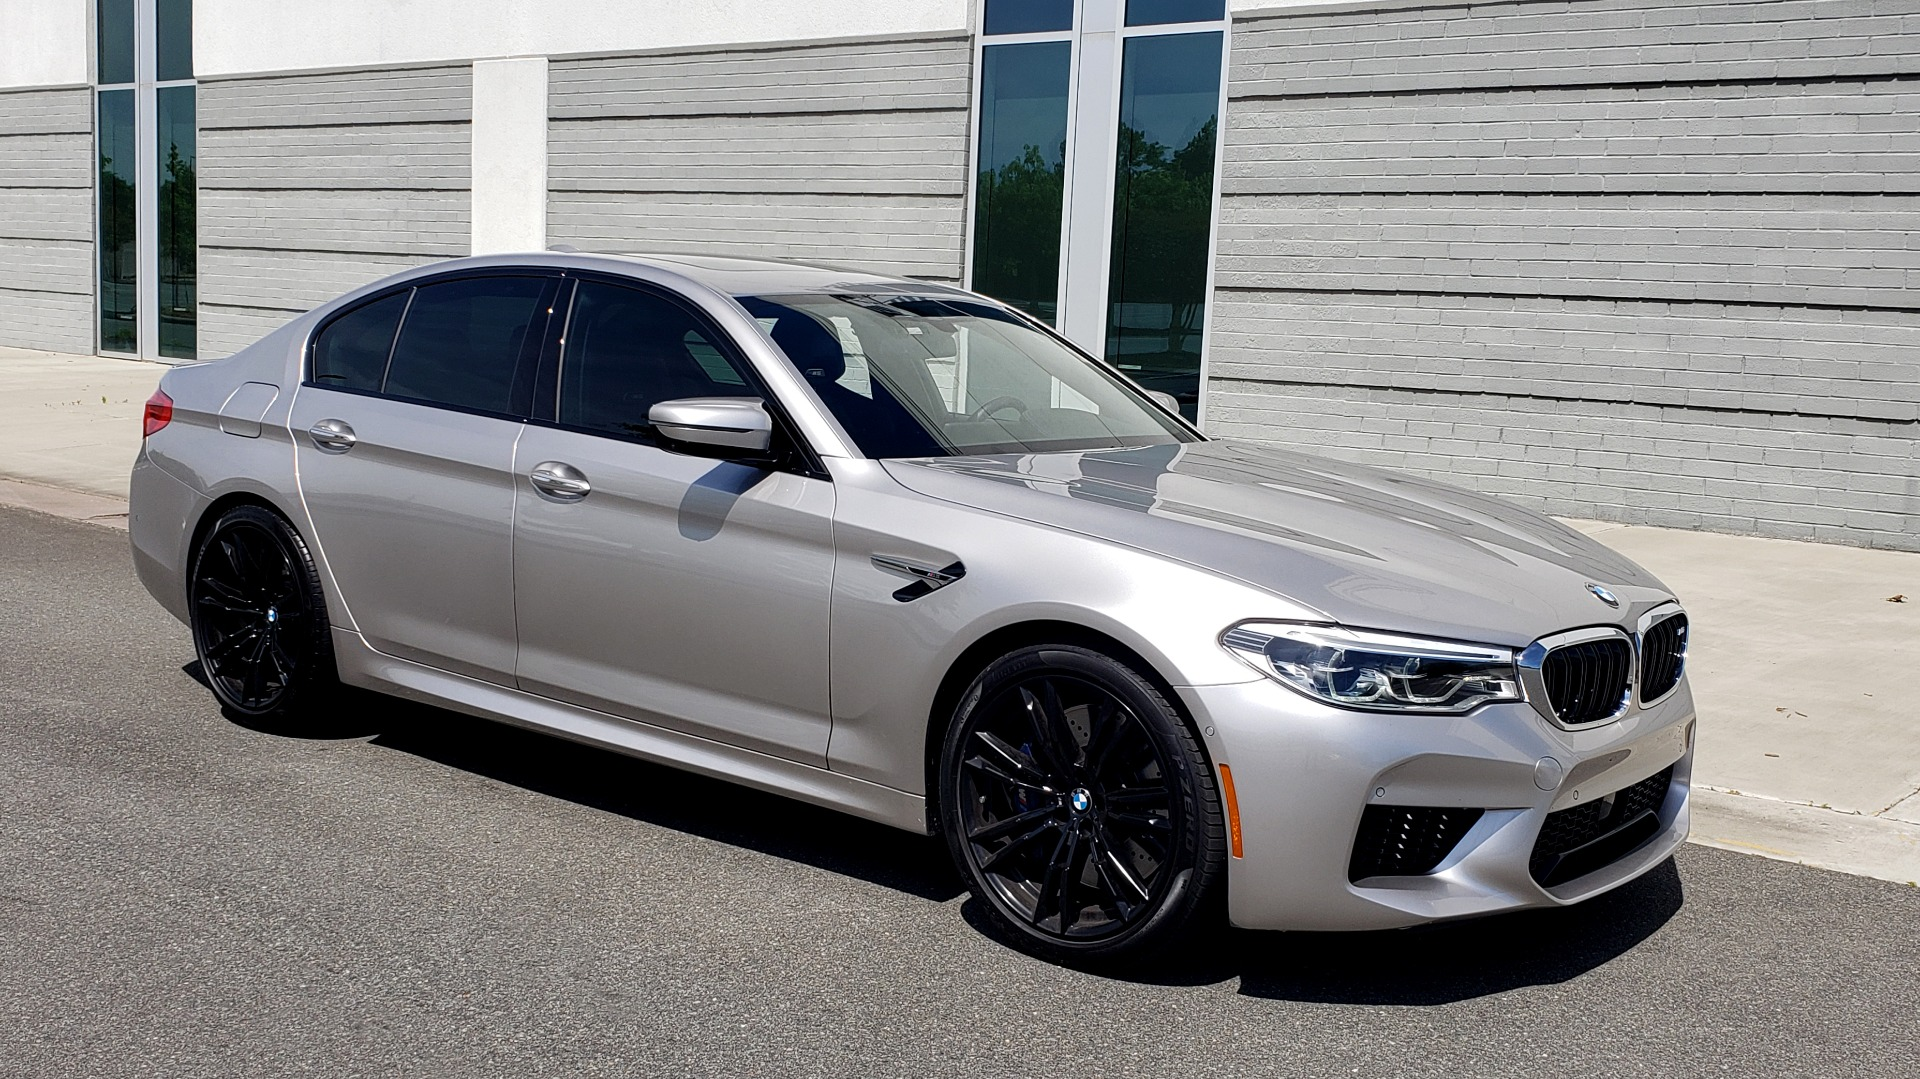 Used 2018 BMW M5 SEDAN / EXEC PKG / DRVR ASST PLUS / MOONROOF / B&W SND for sale $81,495 at Formula Imports in Charlotte NC 28227 7